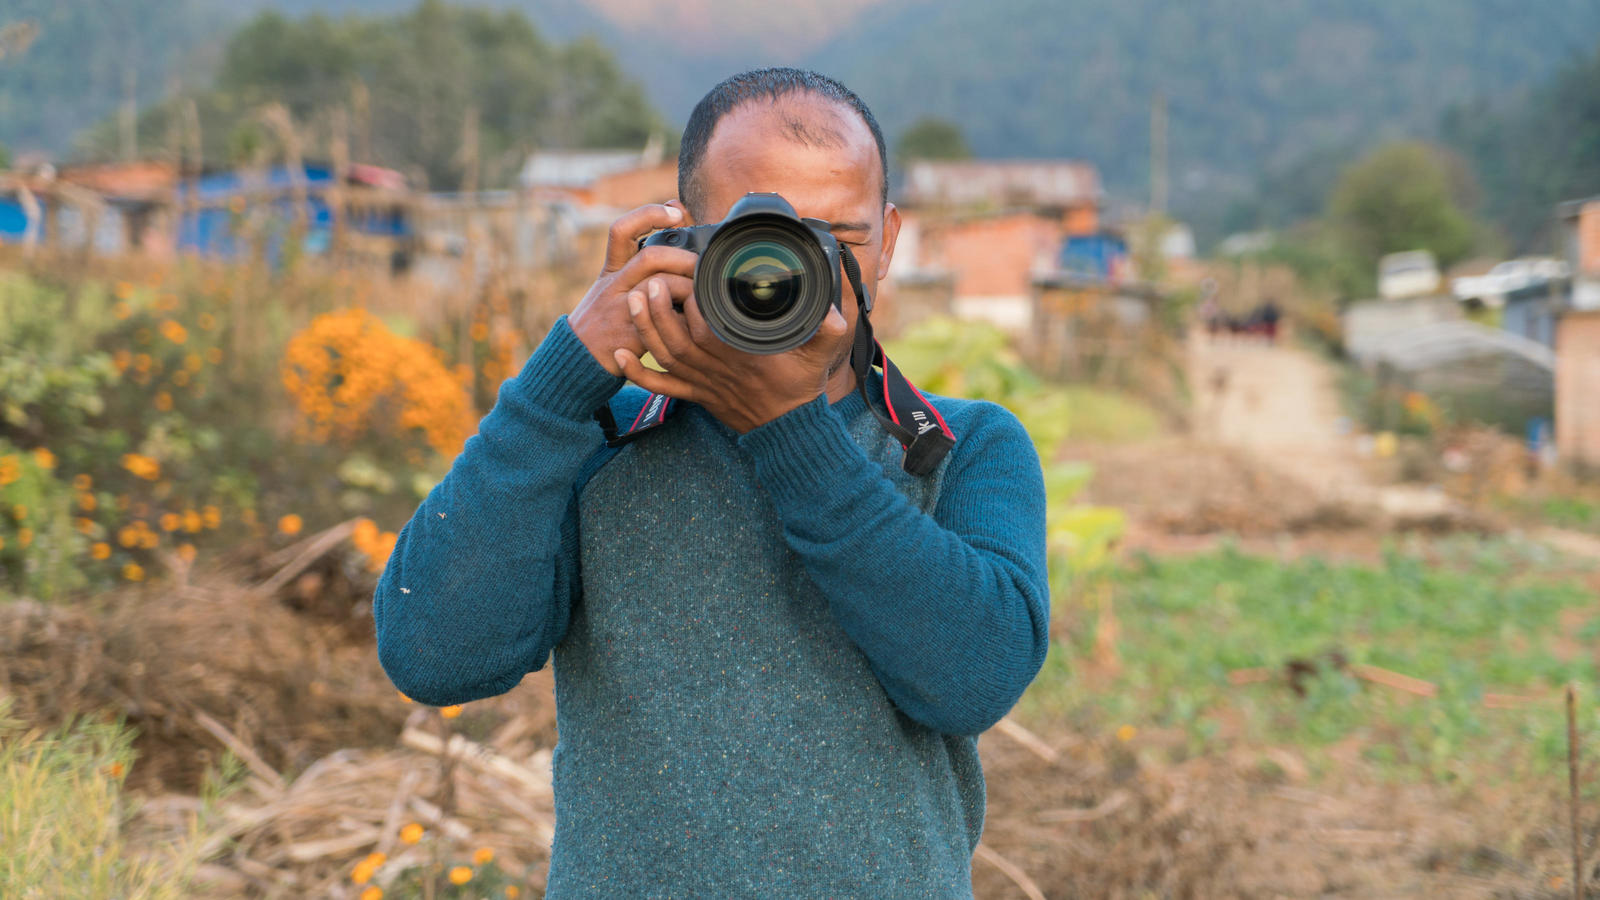 Mani Karmacharya with his camera in the field in Lele, Nepal